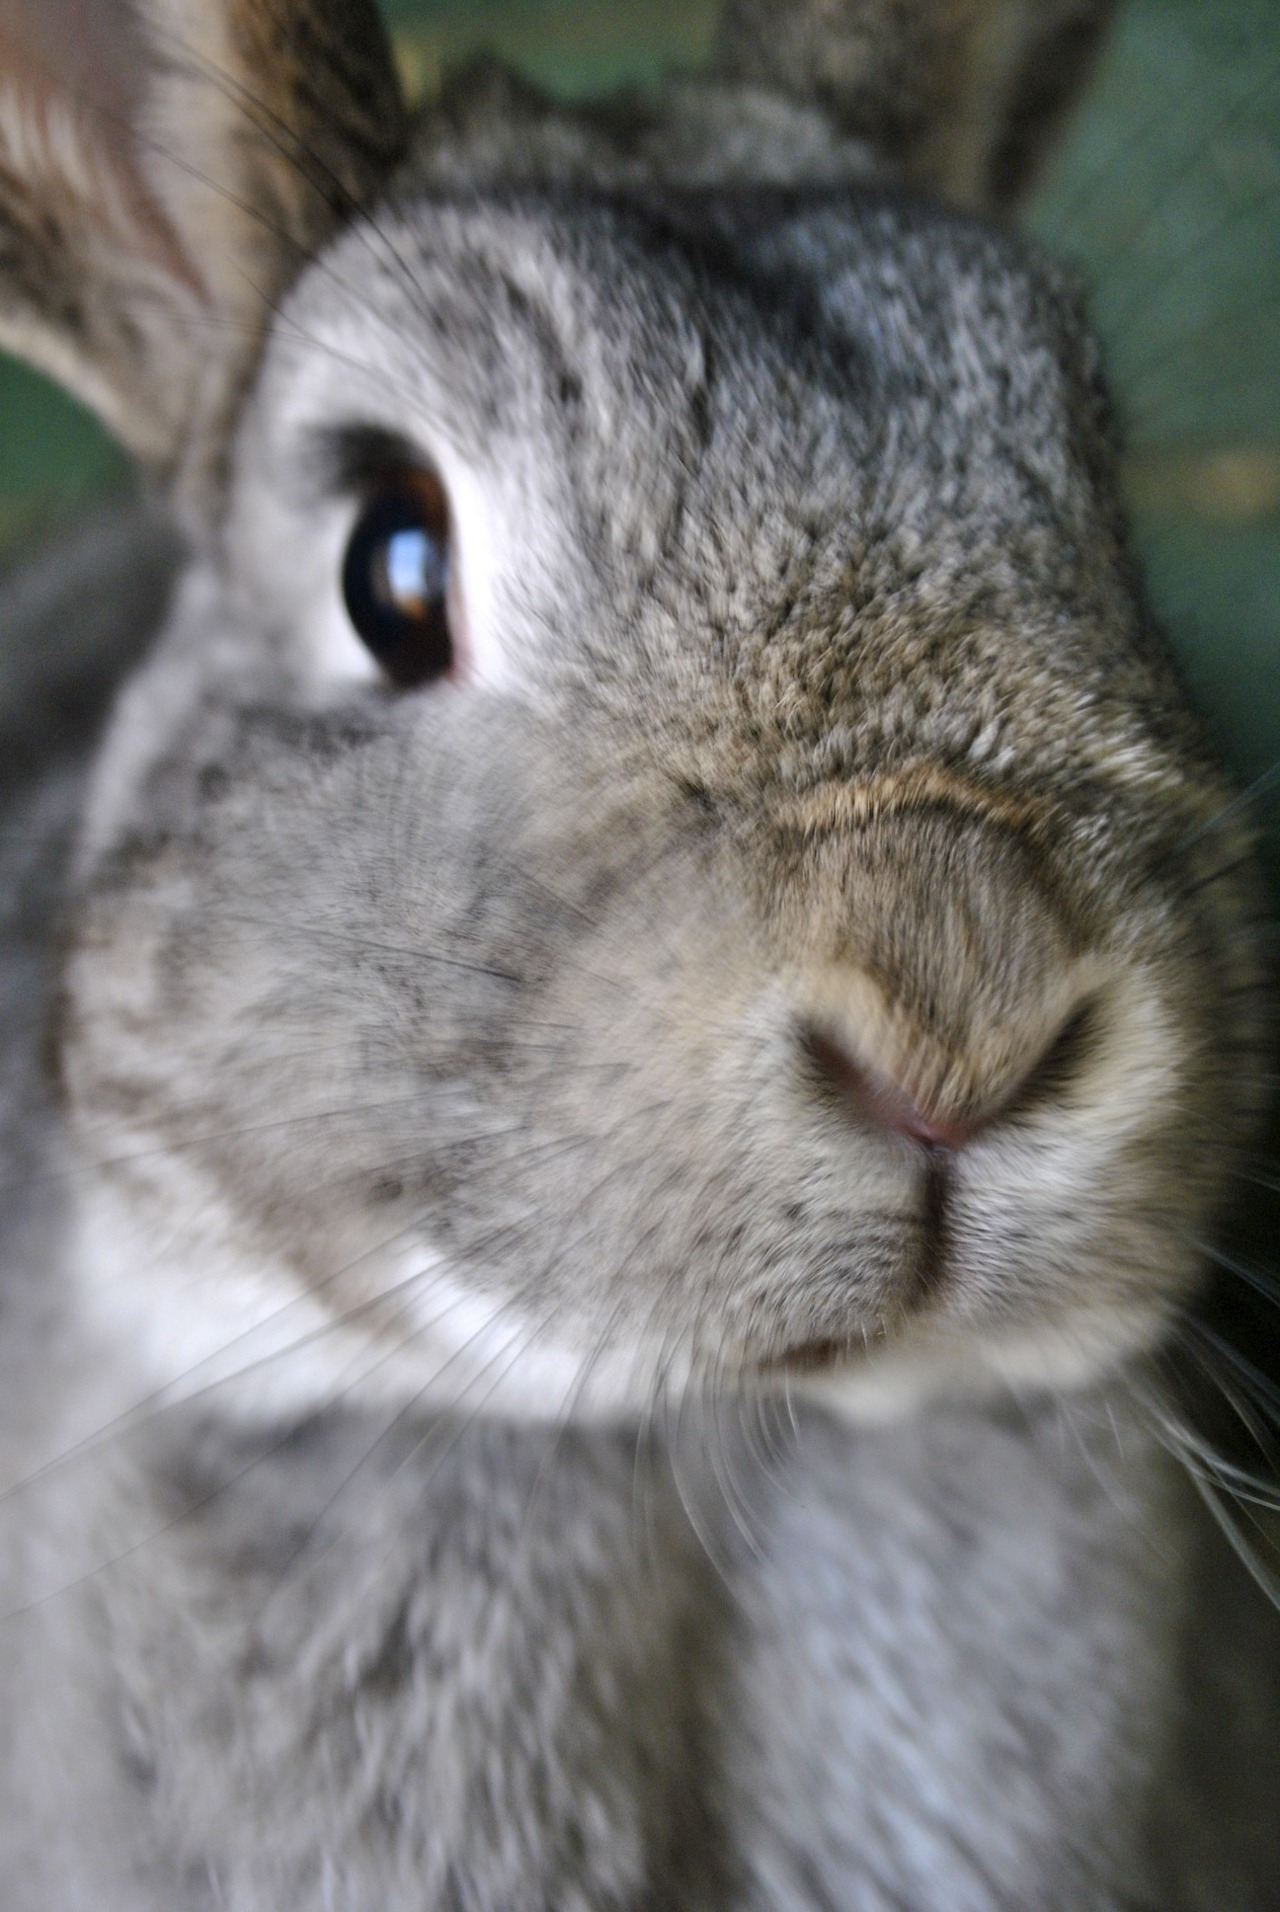 Bunny's Nose Moves Too Quickly for the Camera